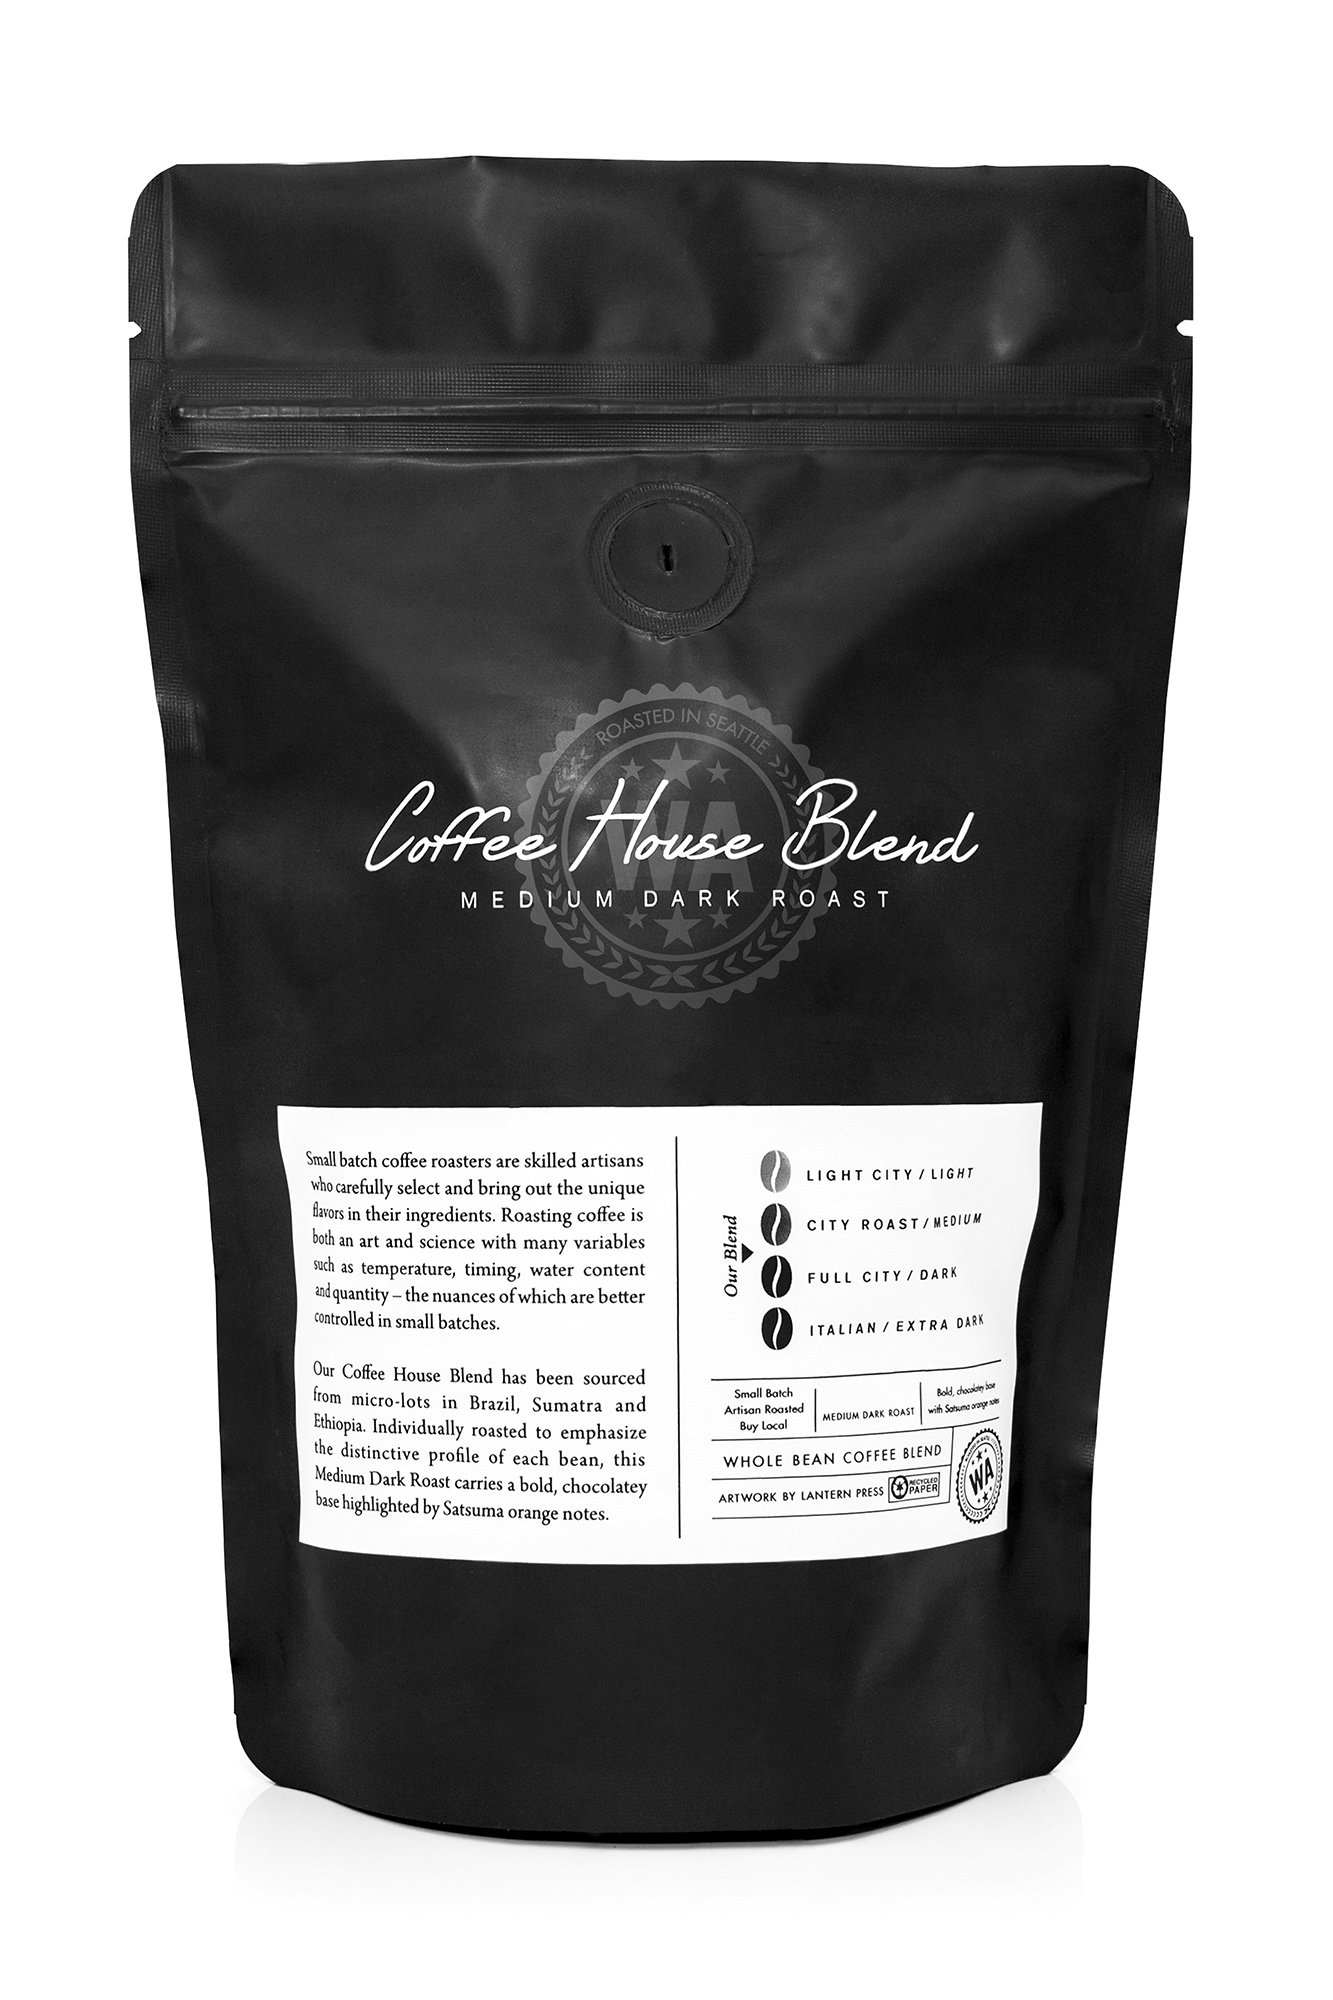 Uncle Tom's Cabin - African American Dance Party Poster (8oz Whole Bean Small Batch Artisan Coffee - Bold & Strong Medium Dark Roast w/Artwork) by Lantern Press (Image #3)